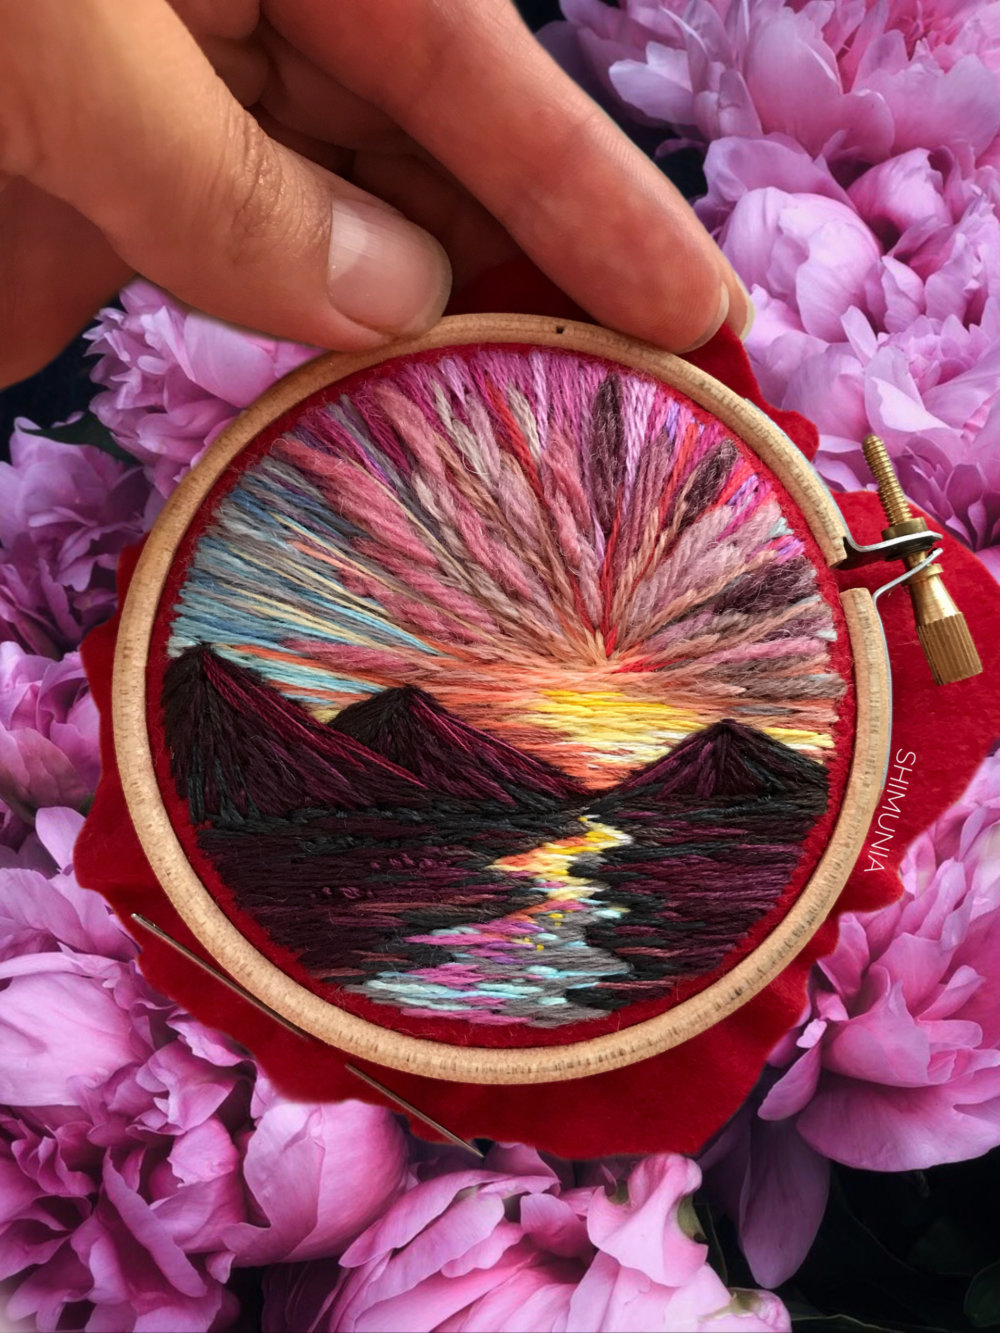 Lush Embroidery Hoop Art Of Landscapes In Vivid Colors By Vera Shimunia 1